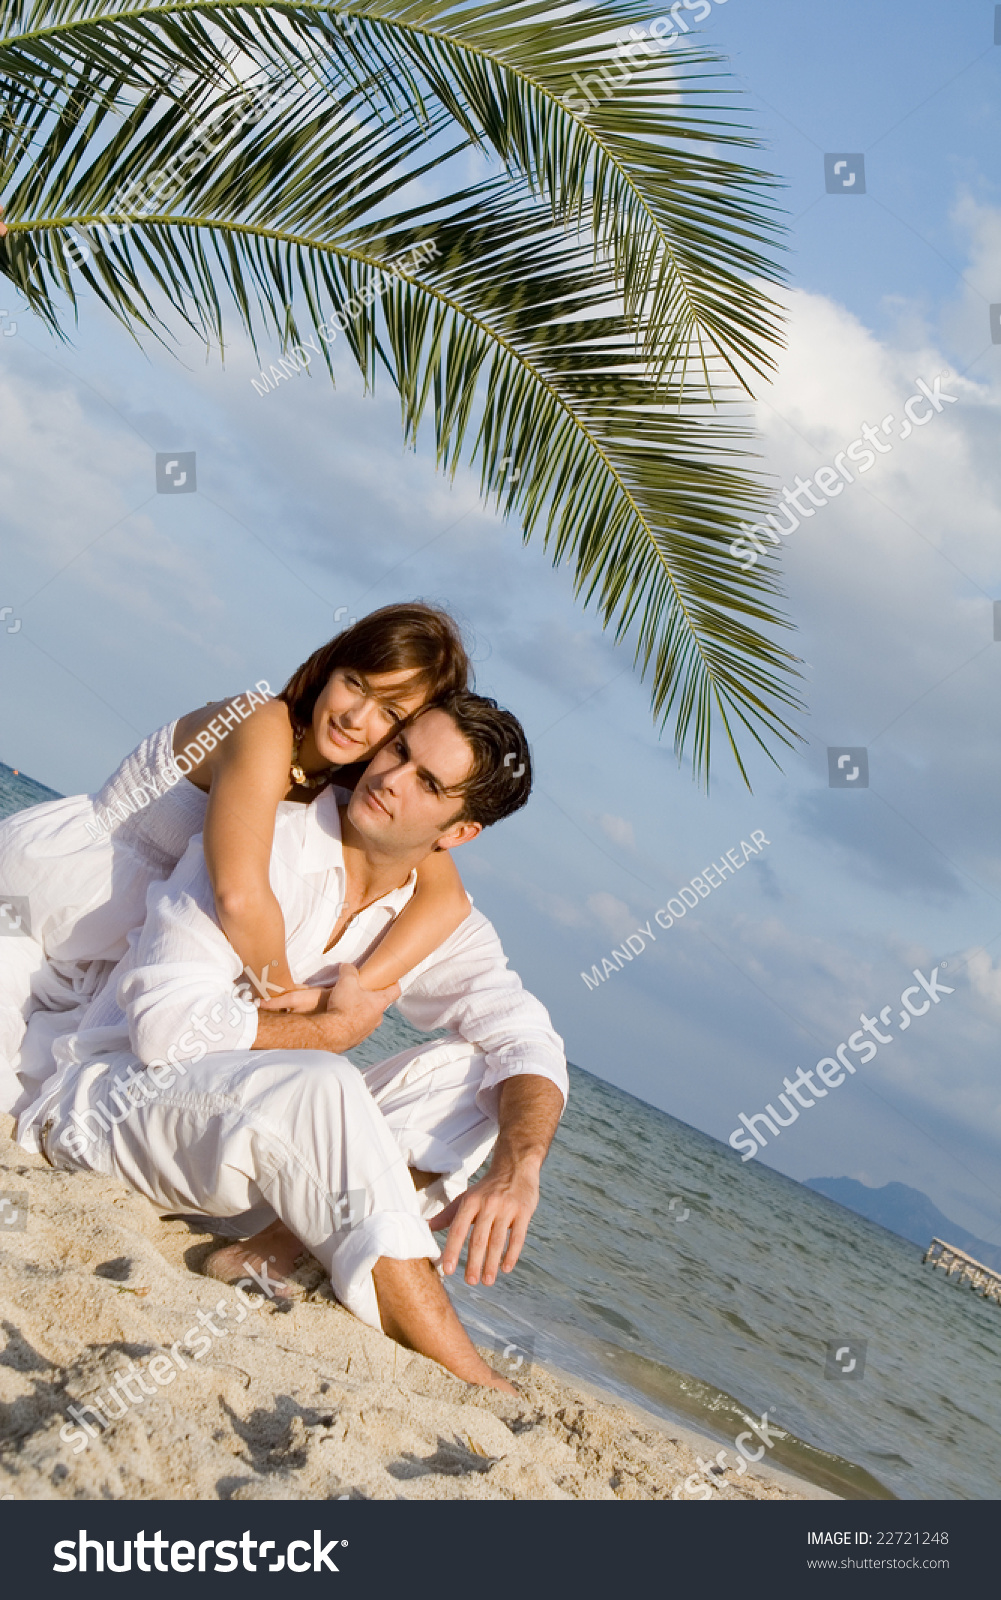 Beautiful couple on vacations stock photo 22721248 for Awesome vacations for couples